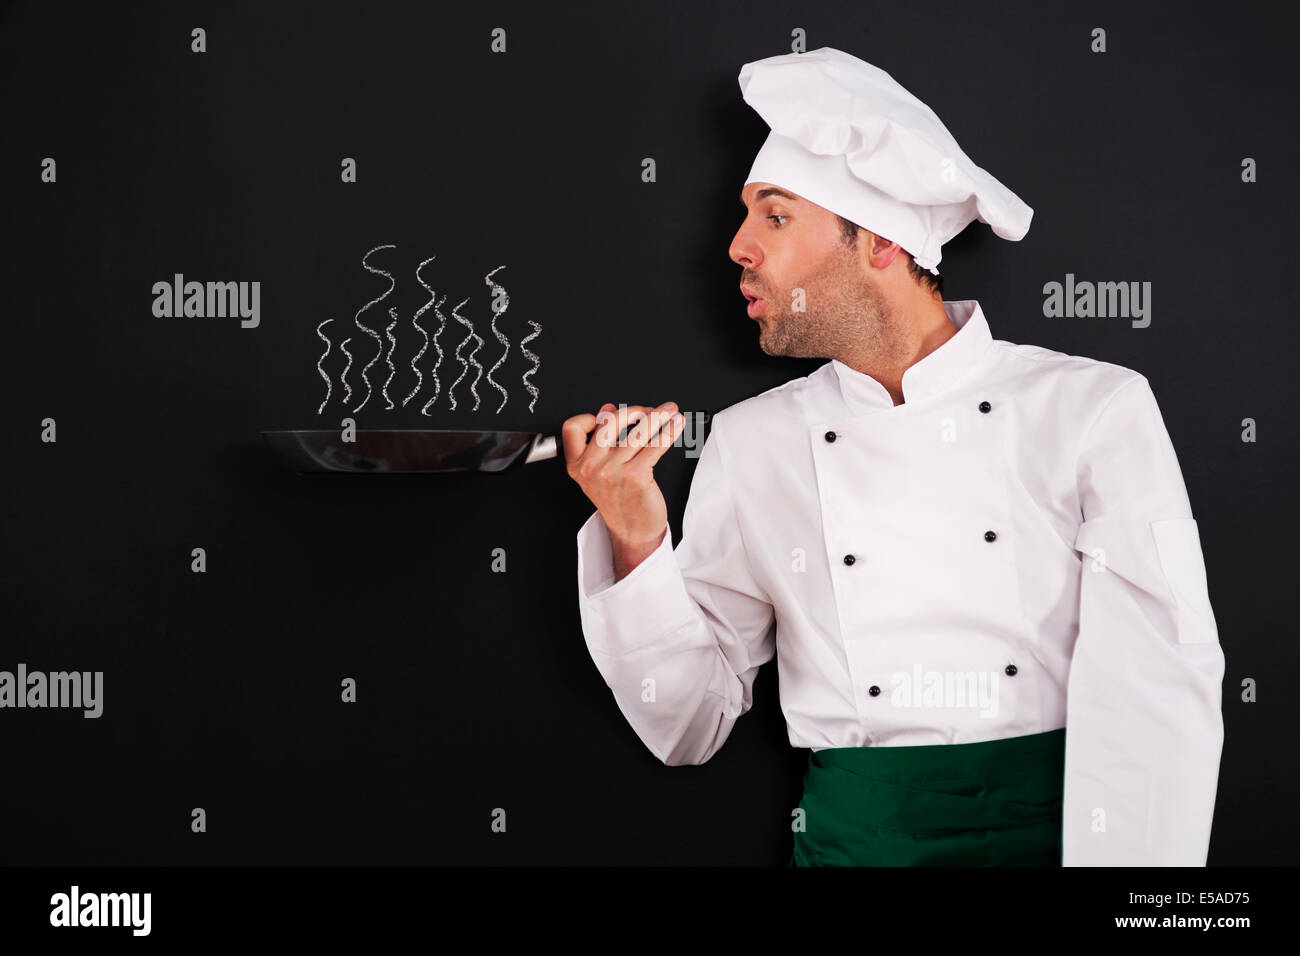 Smoke Smell Stock Photos Amp Smoke Smell Stock Images Alamy